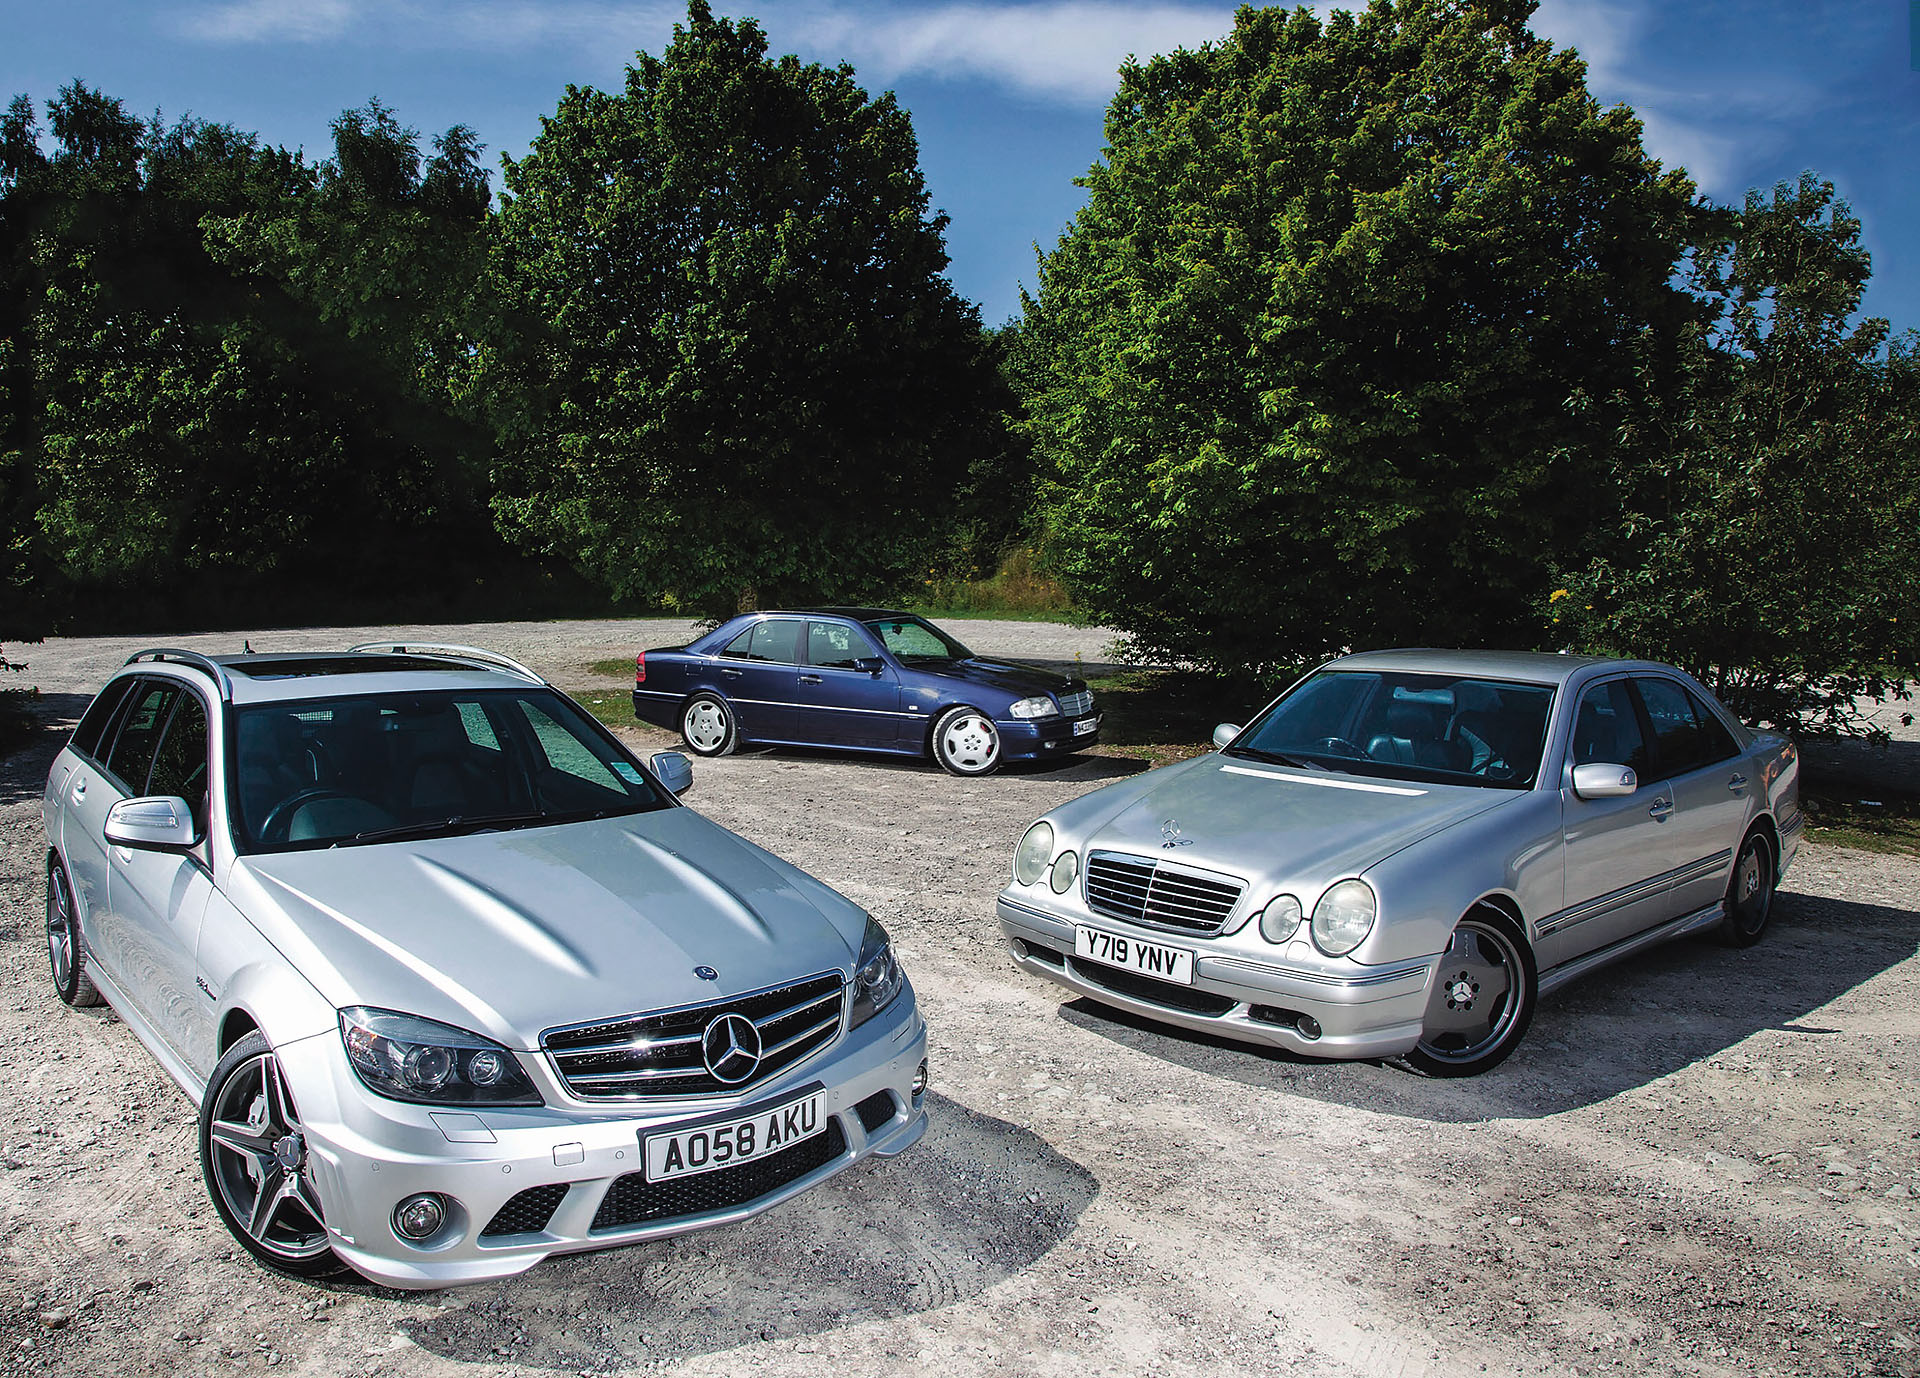 Ownership Mercedes-Benz C36 AMG W202, E55 AMG W210 and C63